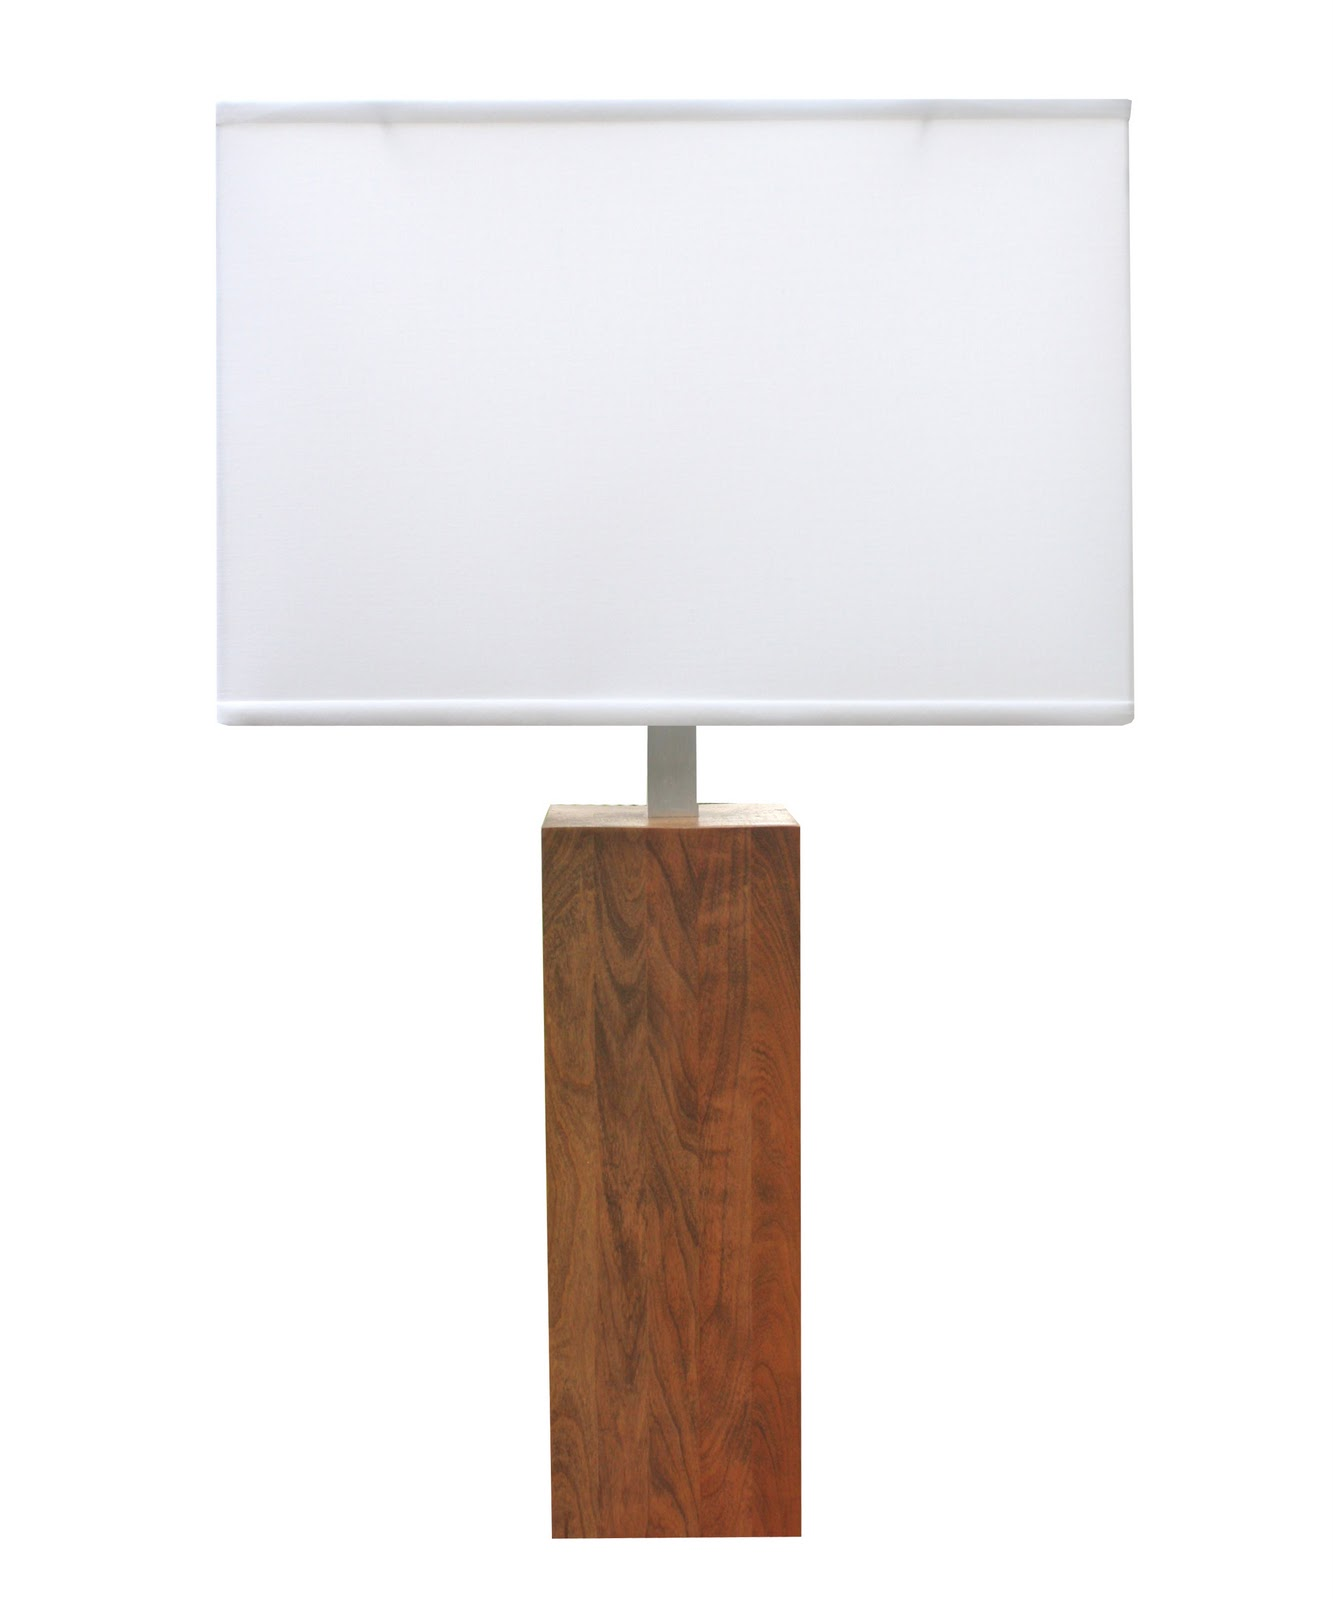 High Street Market: Winston Wood Table Lamp